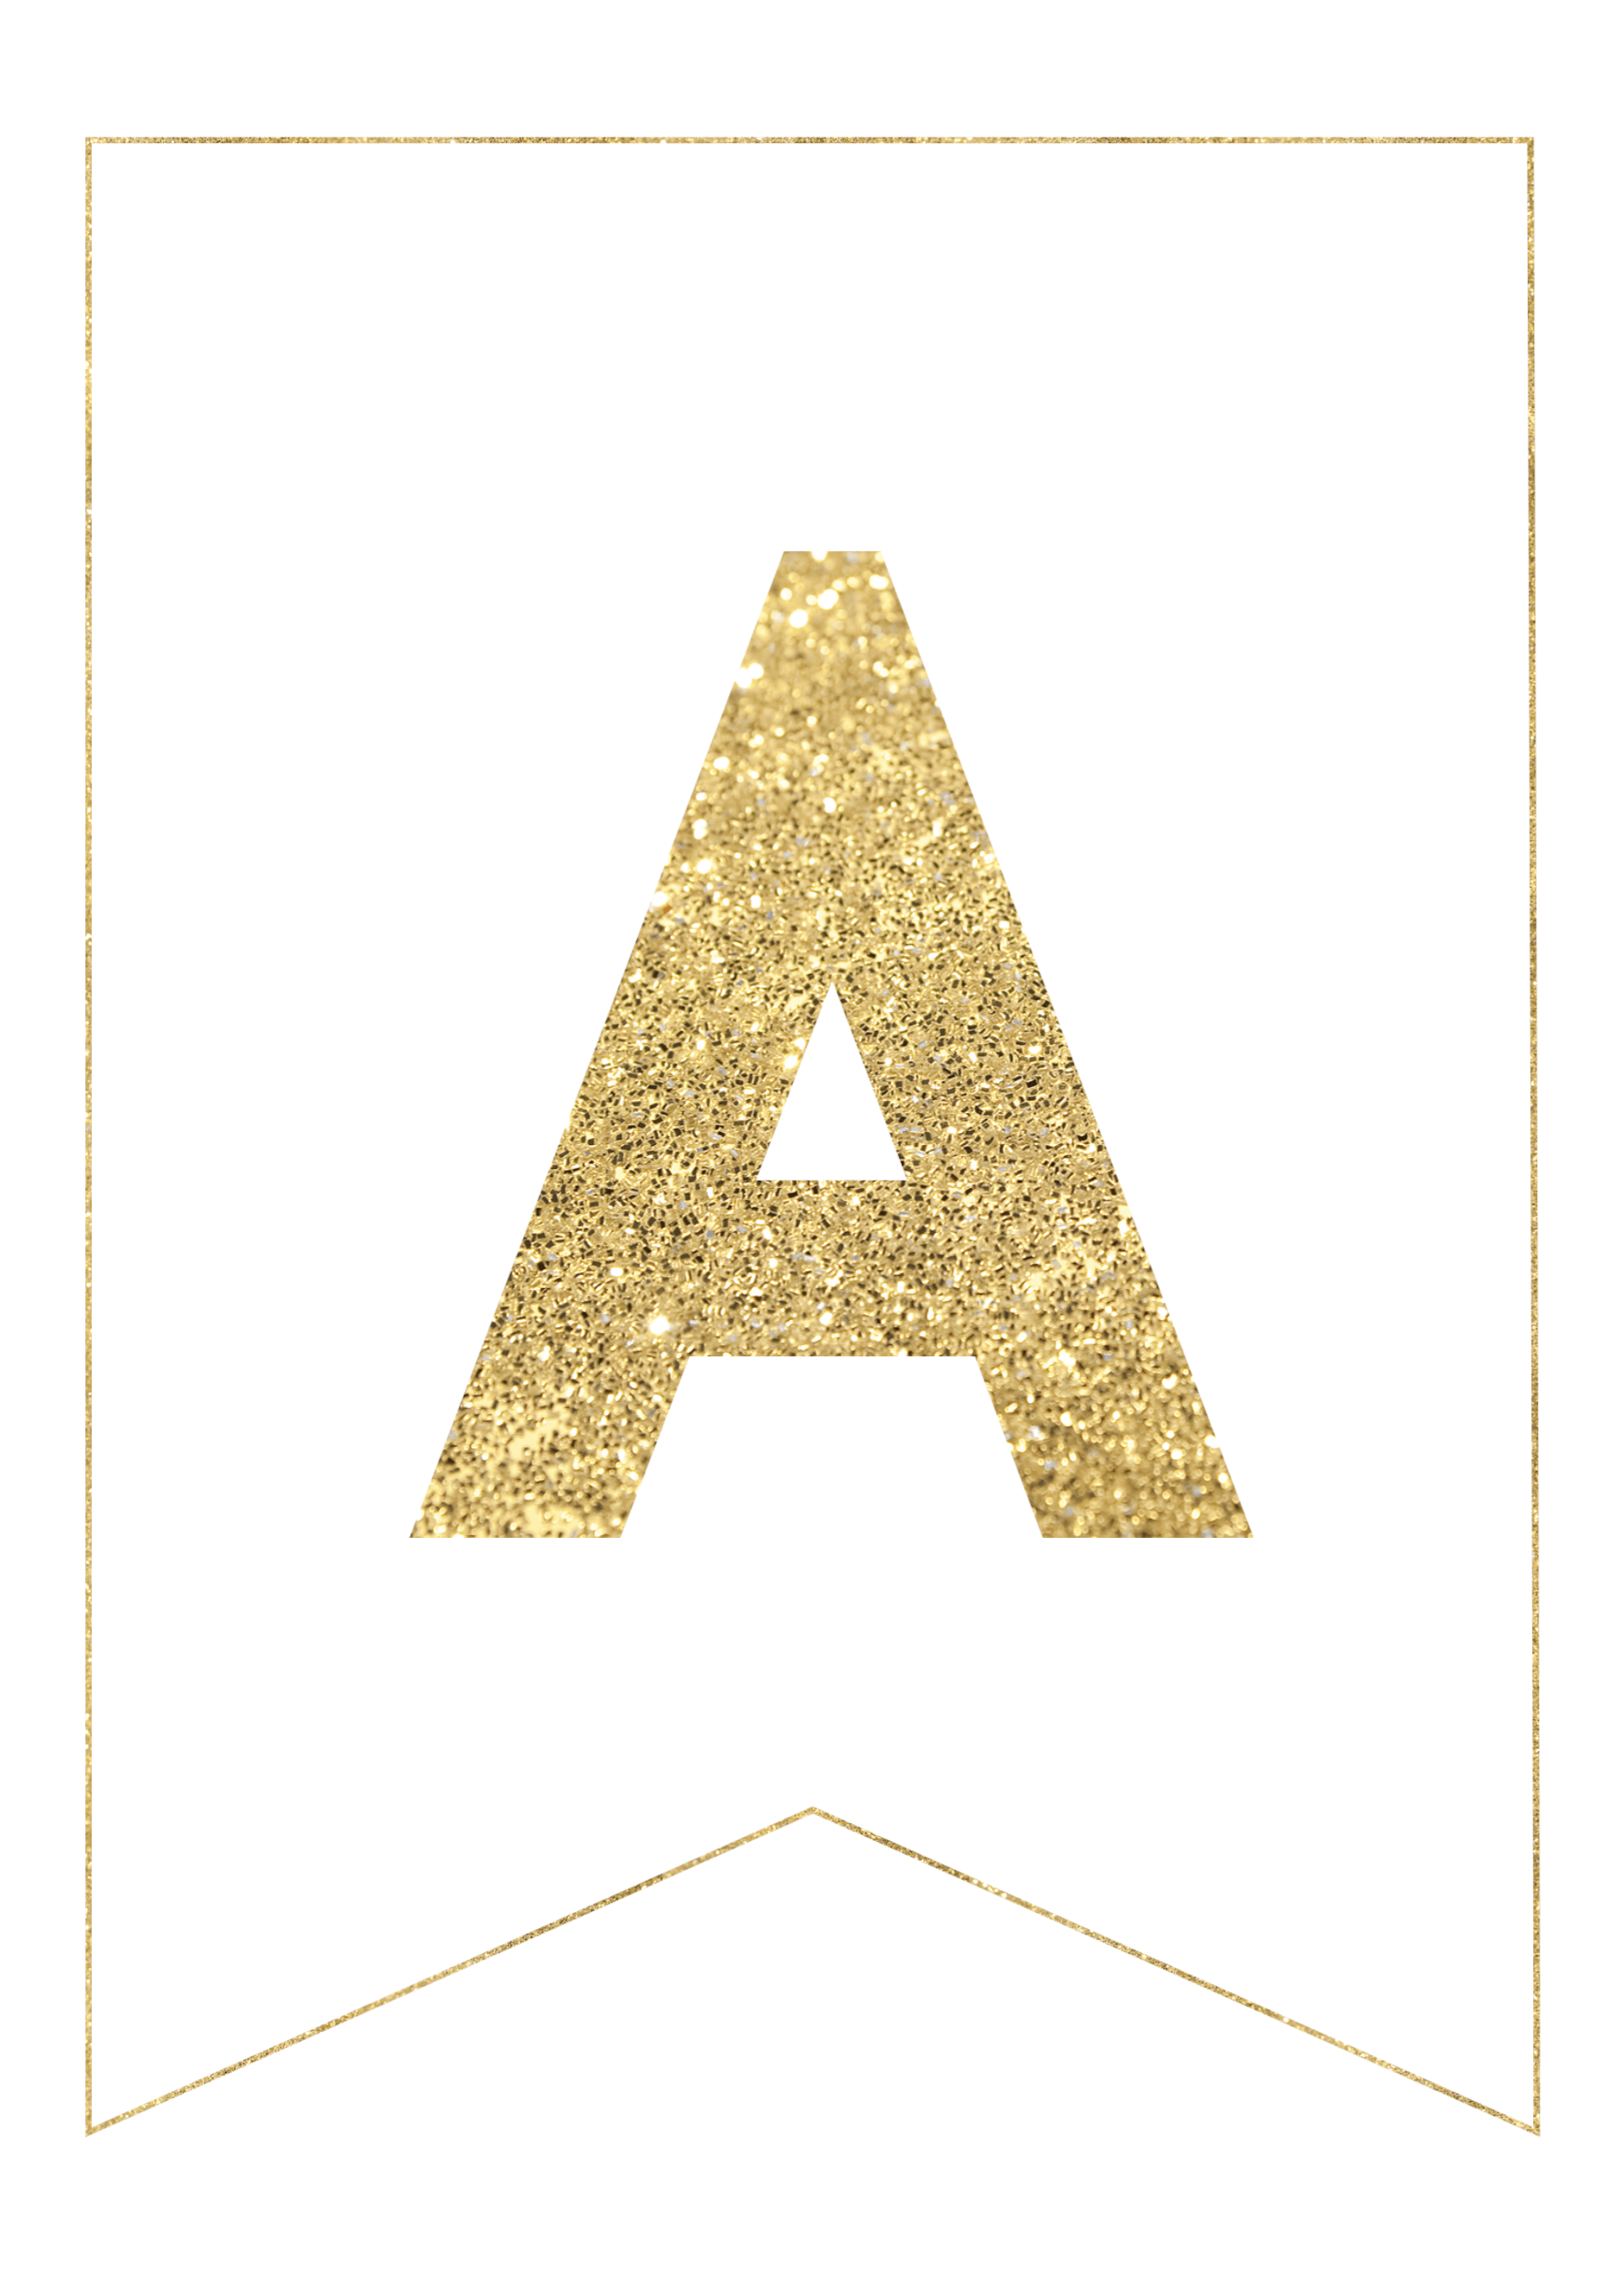 image regarding Printable Letters Banner called Gold Free of charge Printable Banner Letters - Paper Path Style